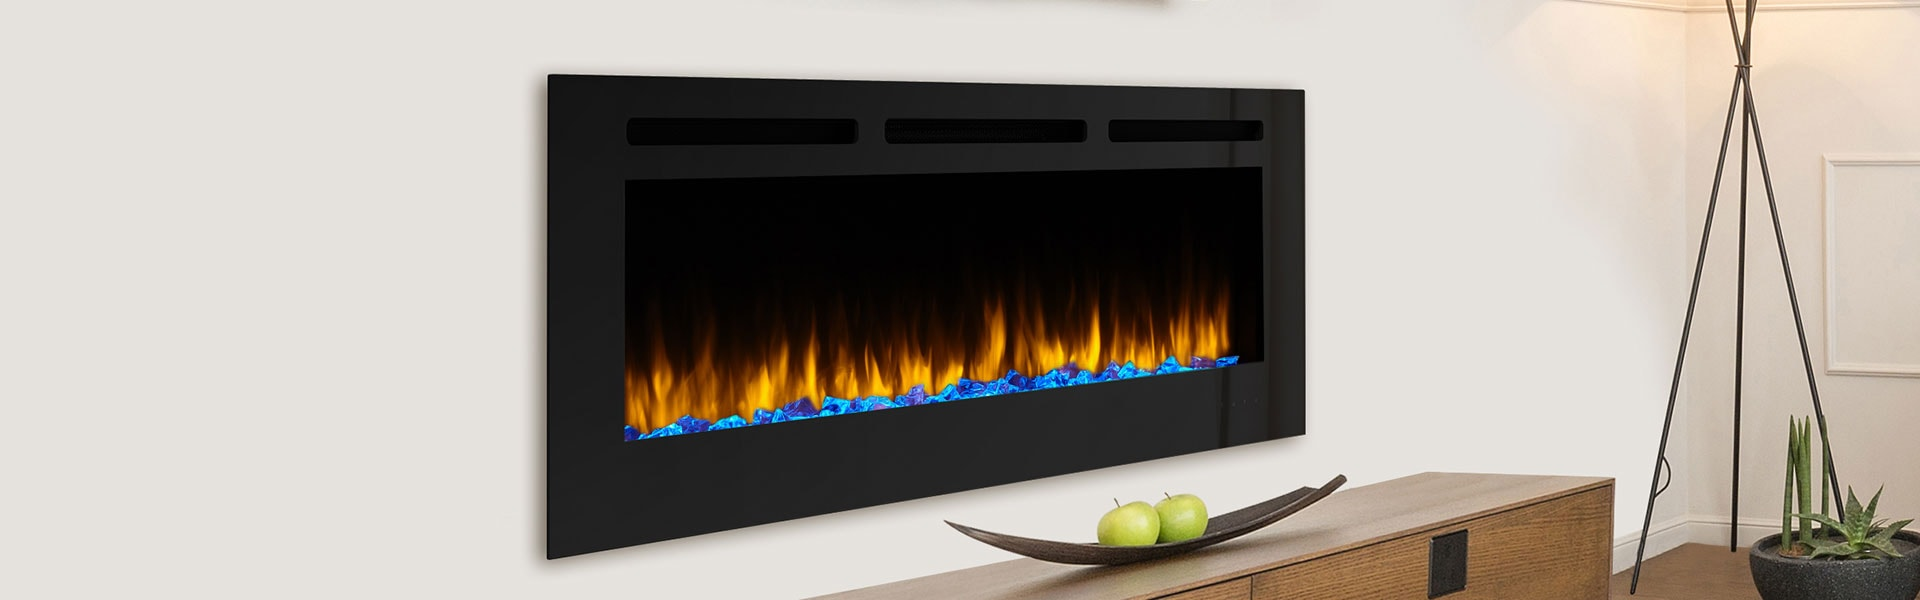 <p>SimpliFire Allusion Electric Fireplace</p>